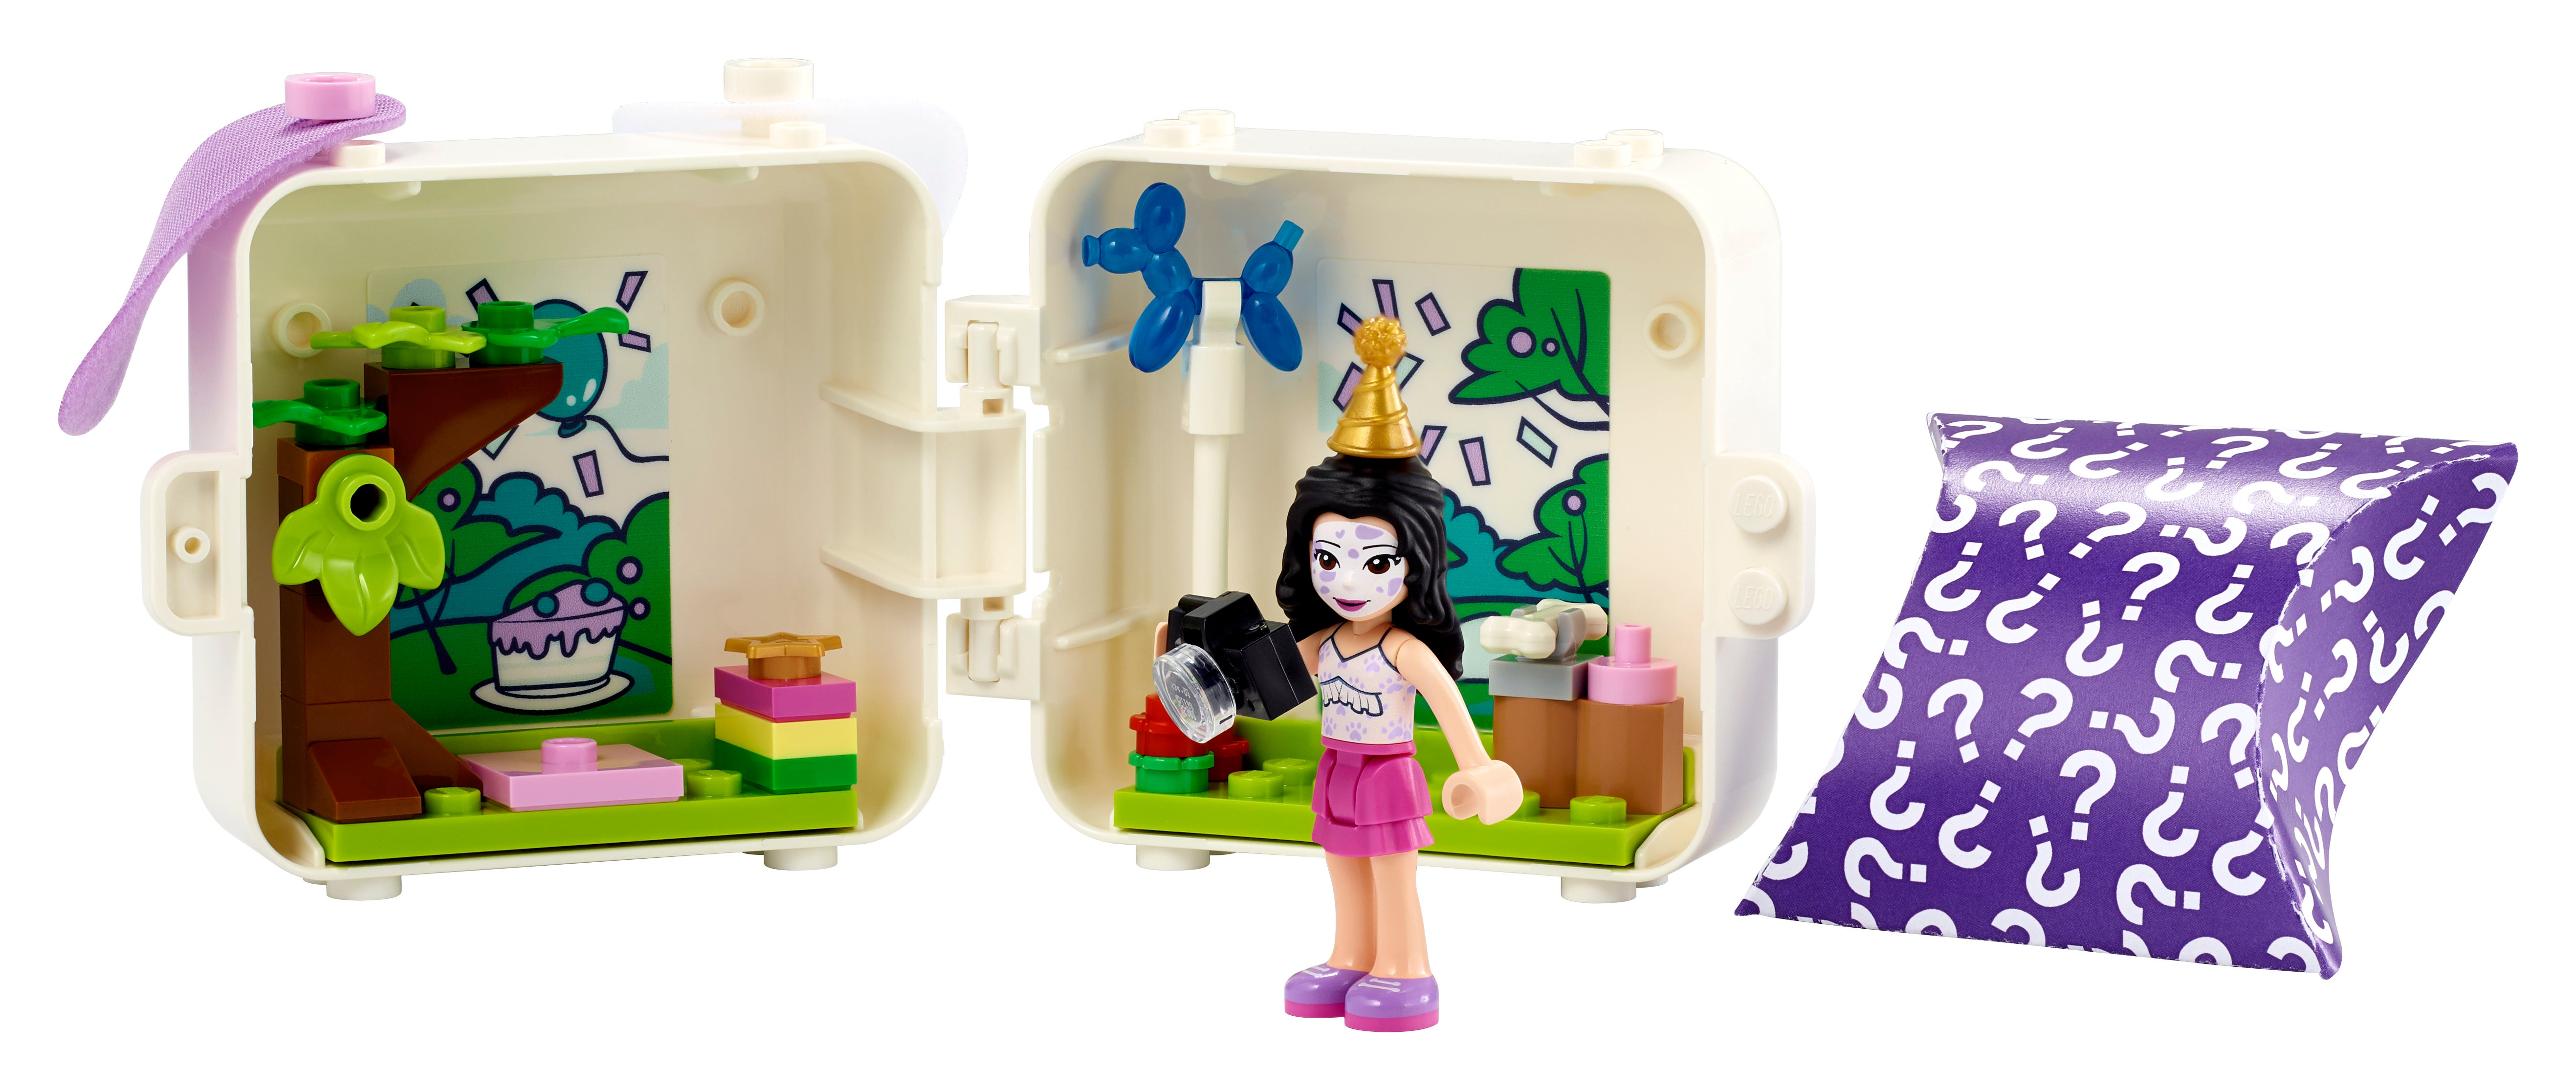 New 2021 41 Pieces LEGO Friends Emma/'s Dalmatian Cube 41663 Building Kit; Puppy Toy Creative Gift for Kids Comes with an Emma Mini-Doll Toy